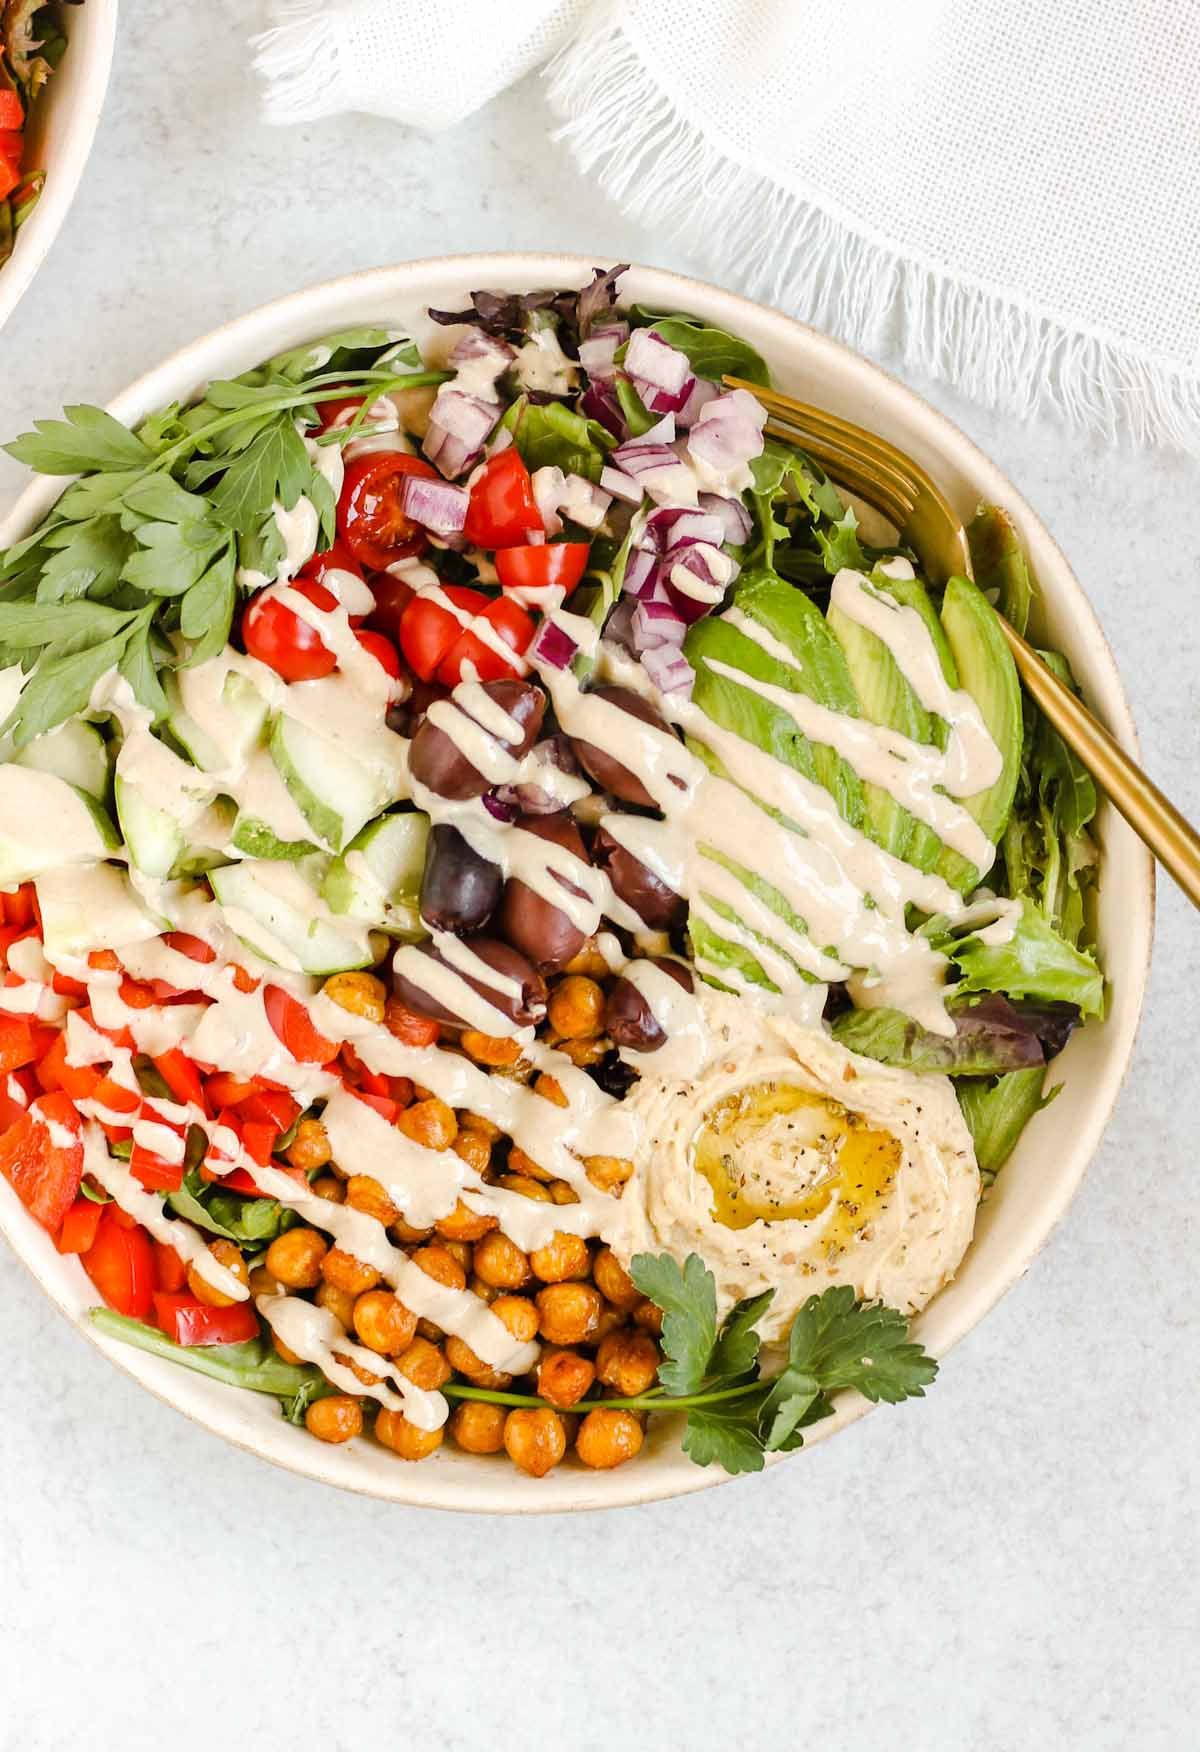 Mediterranean salad bowl with tahini dressing drizzled on top.